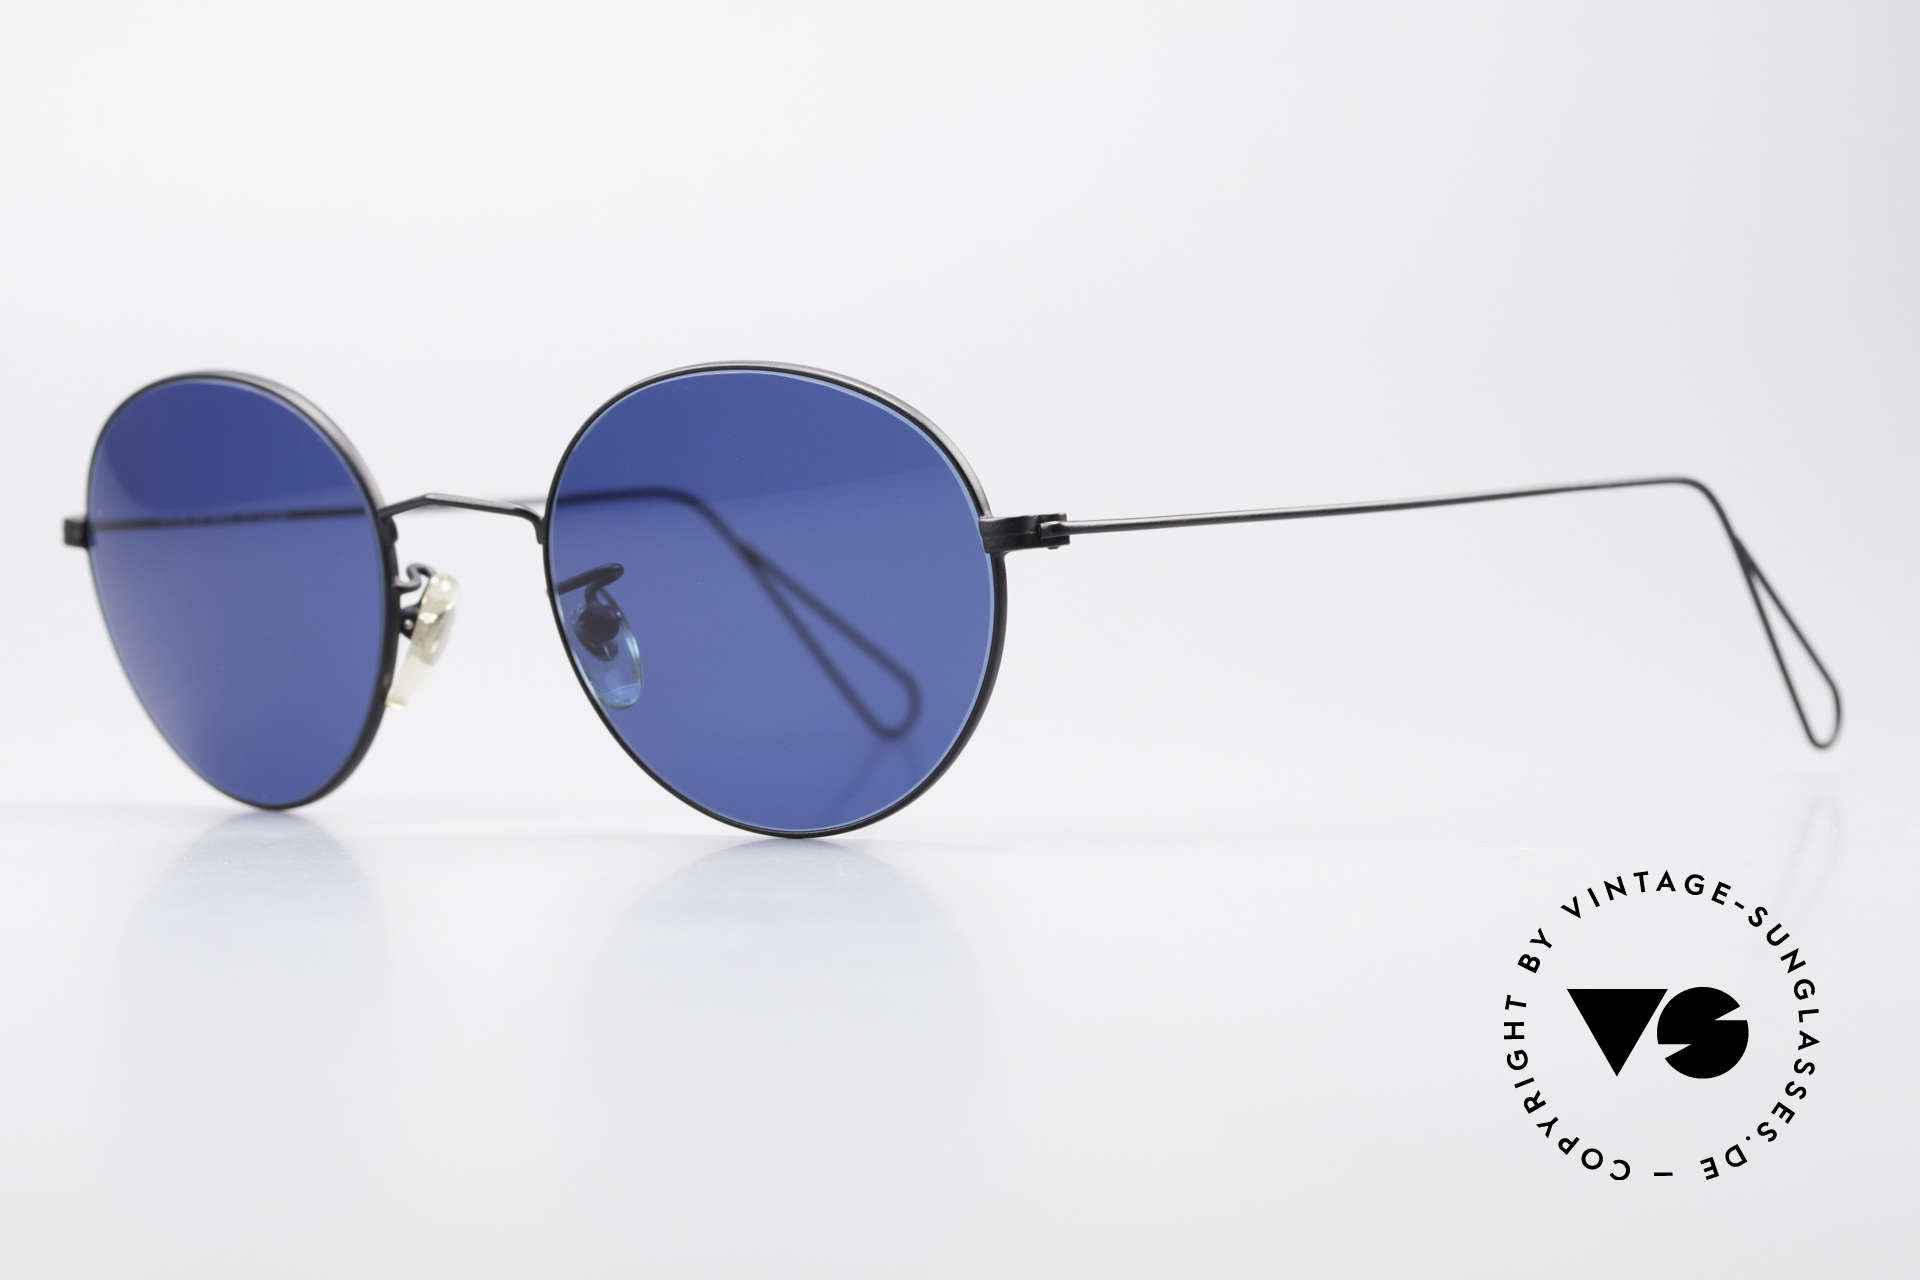 Cutler And Gross 0306 Round Vintage 90's Sunglasses, stylish & distinctive in absence of an ostentatious logo, Made for Men and Women